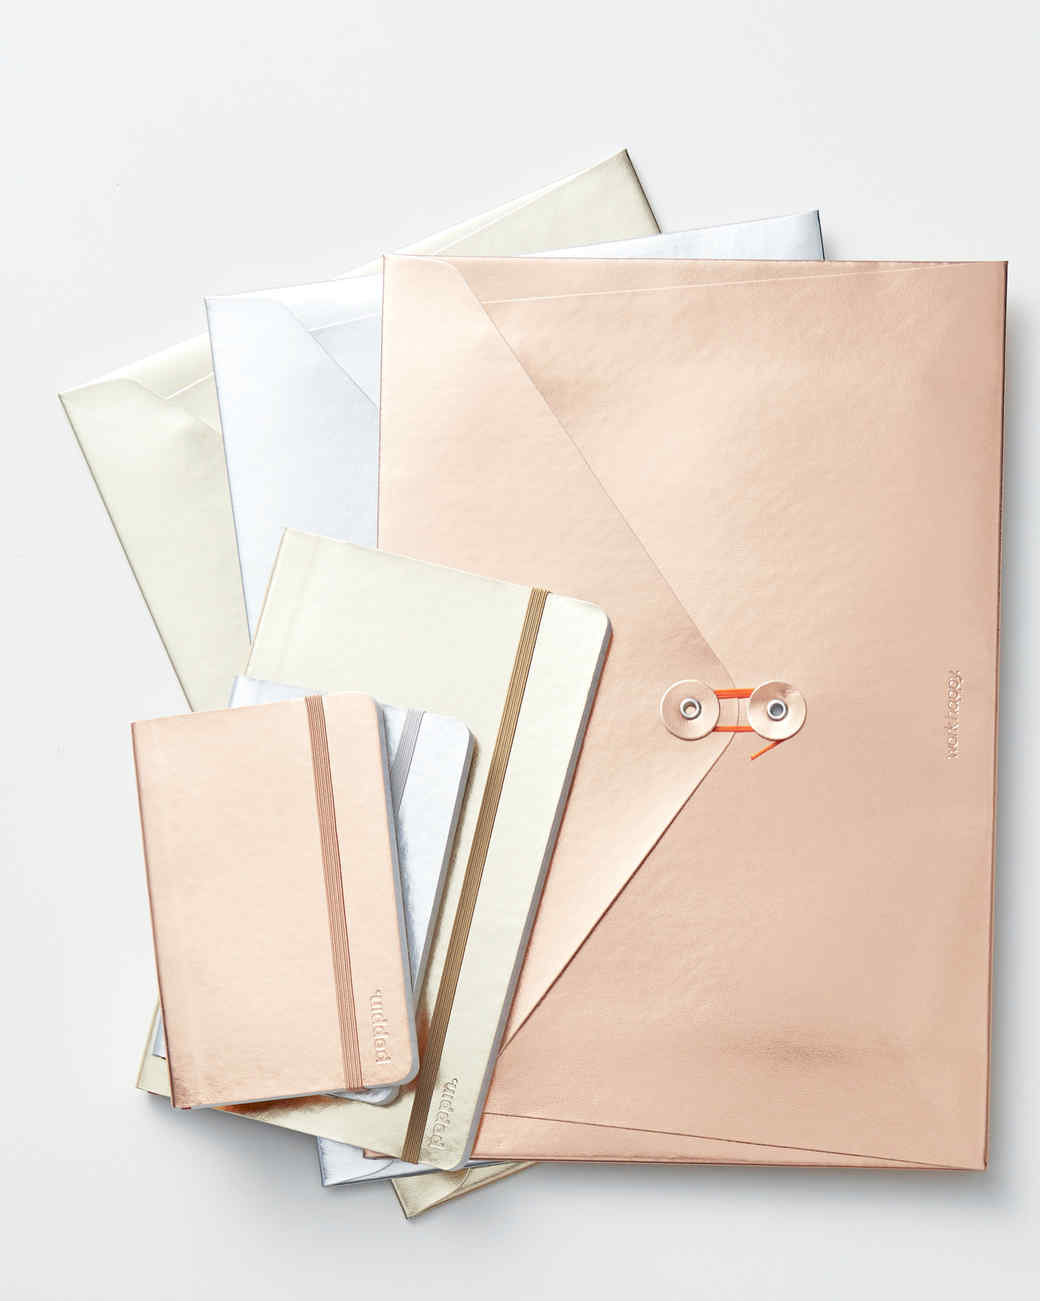 metallic-notebooks-and-folders-026-d112494.jpg